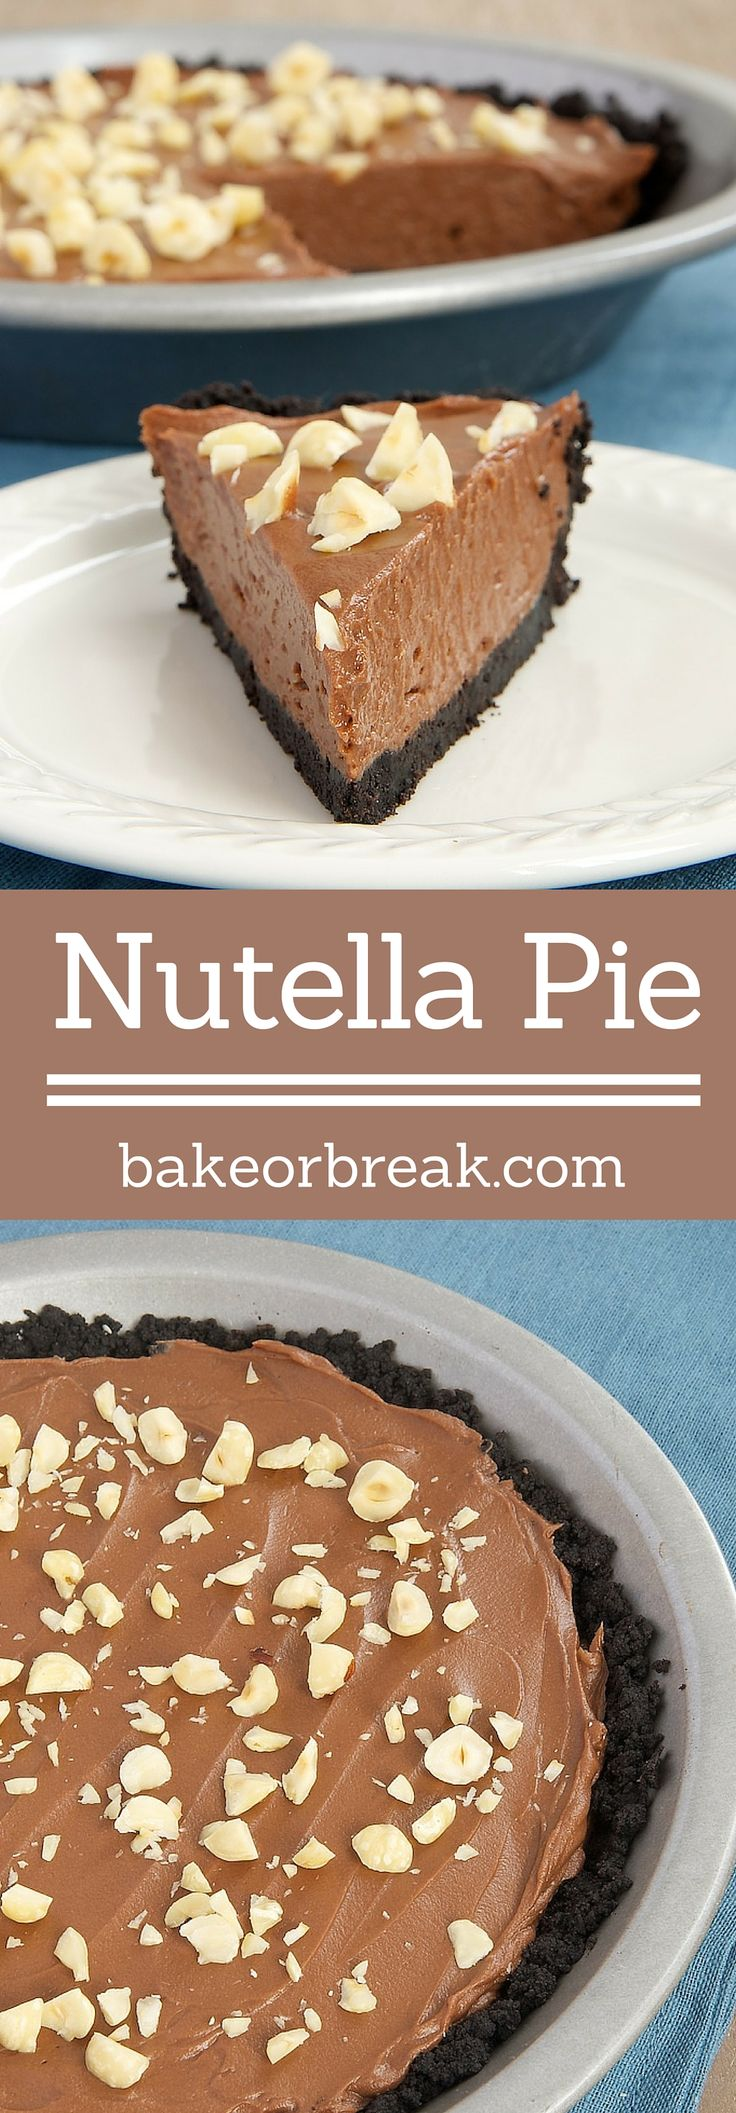 Love Nutella? Then you will just adore this simple, delicious Nutella Pie! - Bake or Break ~ http://www.bakeorbreak.com